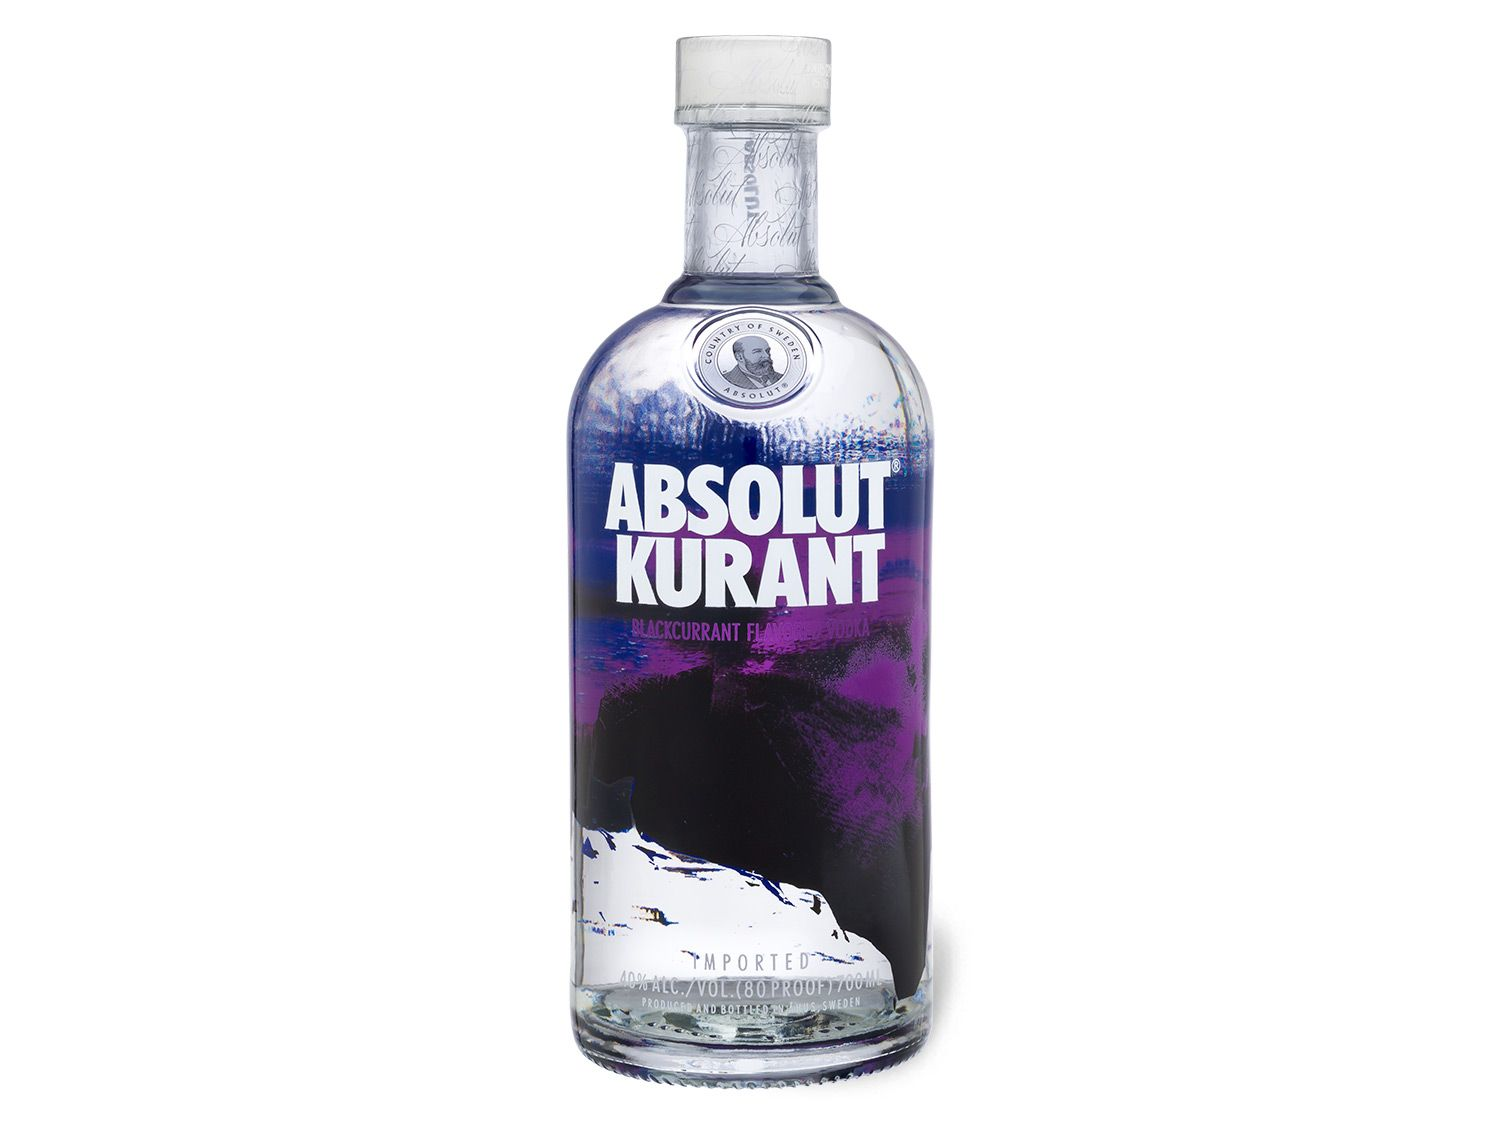 absolut vodka absolut kurant flavou. vodka lidl - Absolut Kurant Vector PNG